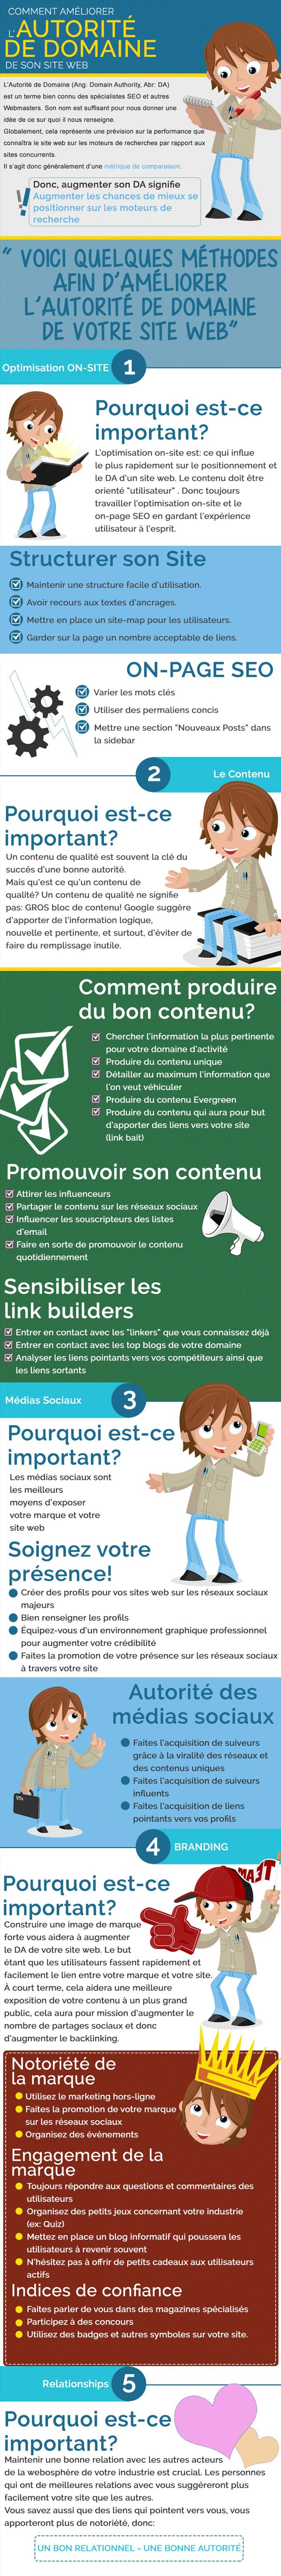 Augmenter le Domain Authority de sont site passe principalement par le contenu. #SEO